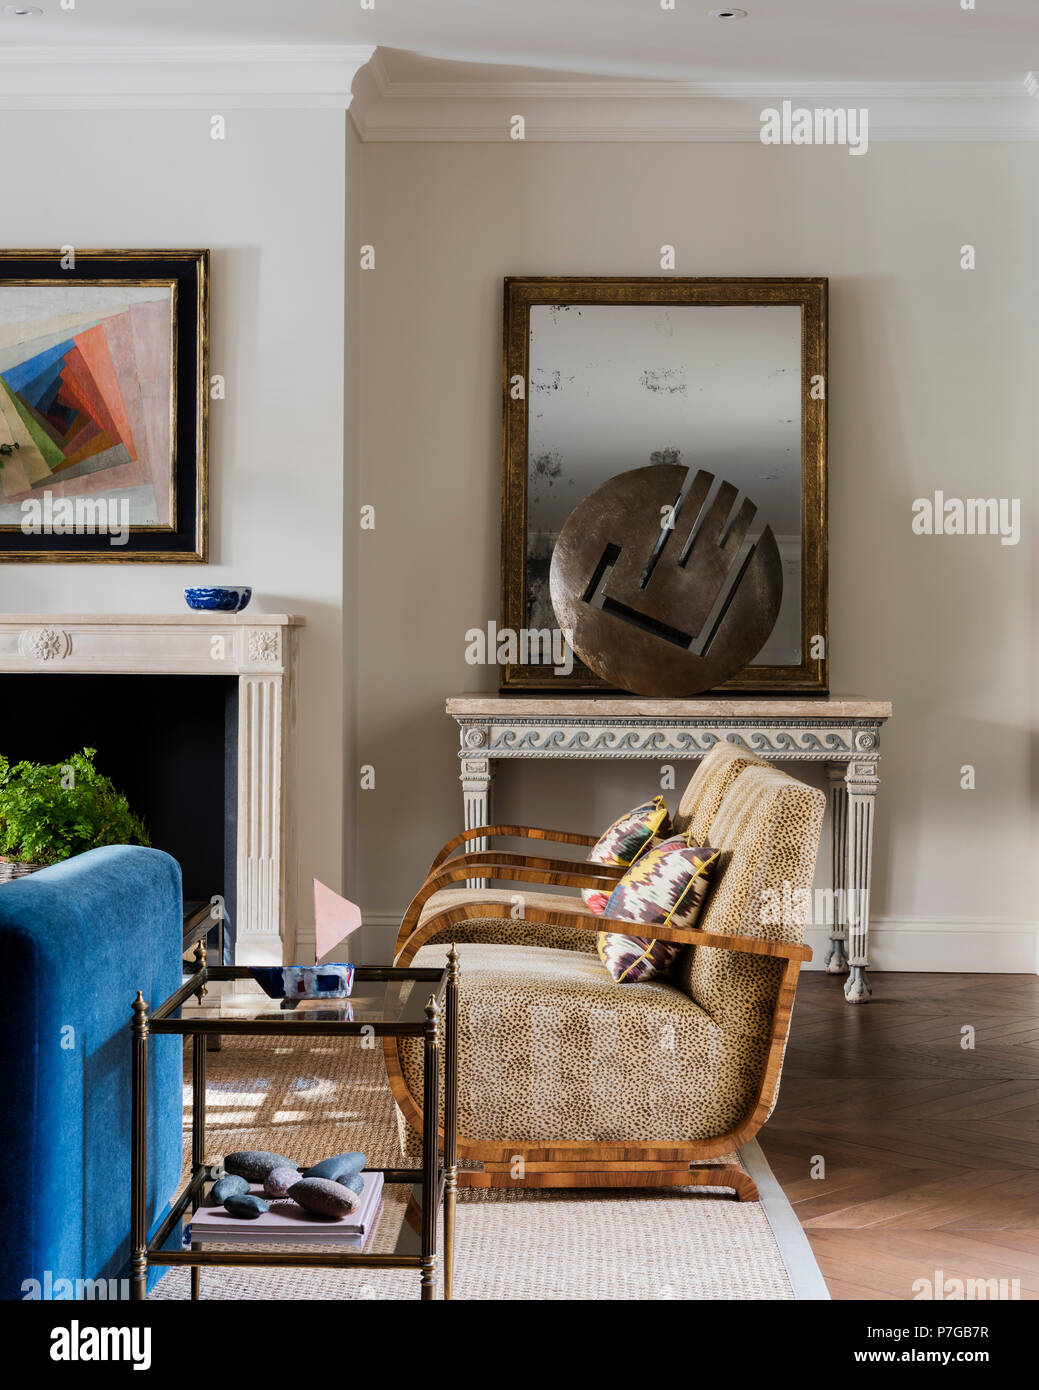 Modern armchairs in living room Stock Photo: 211187083 - Alamy